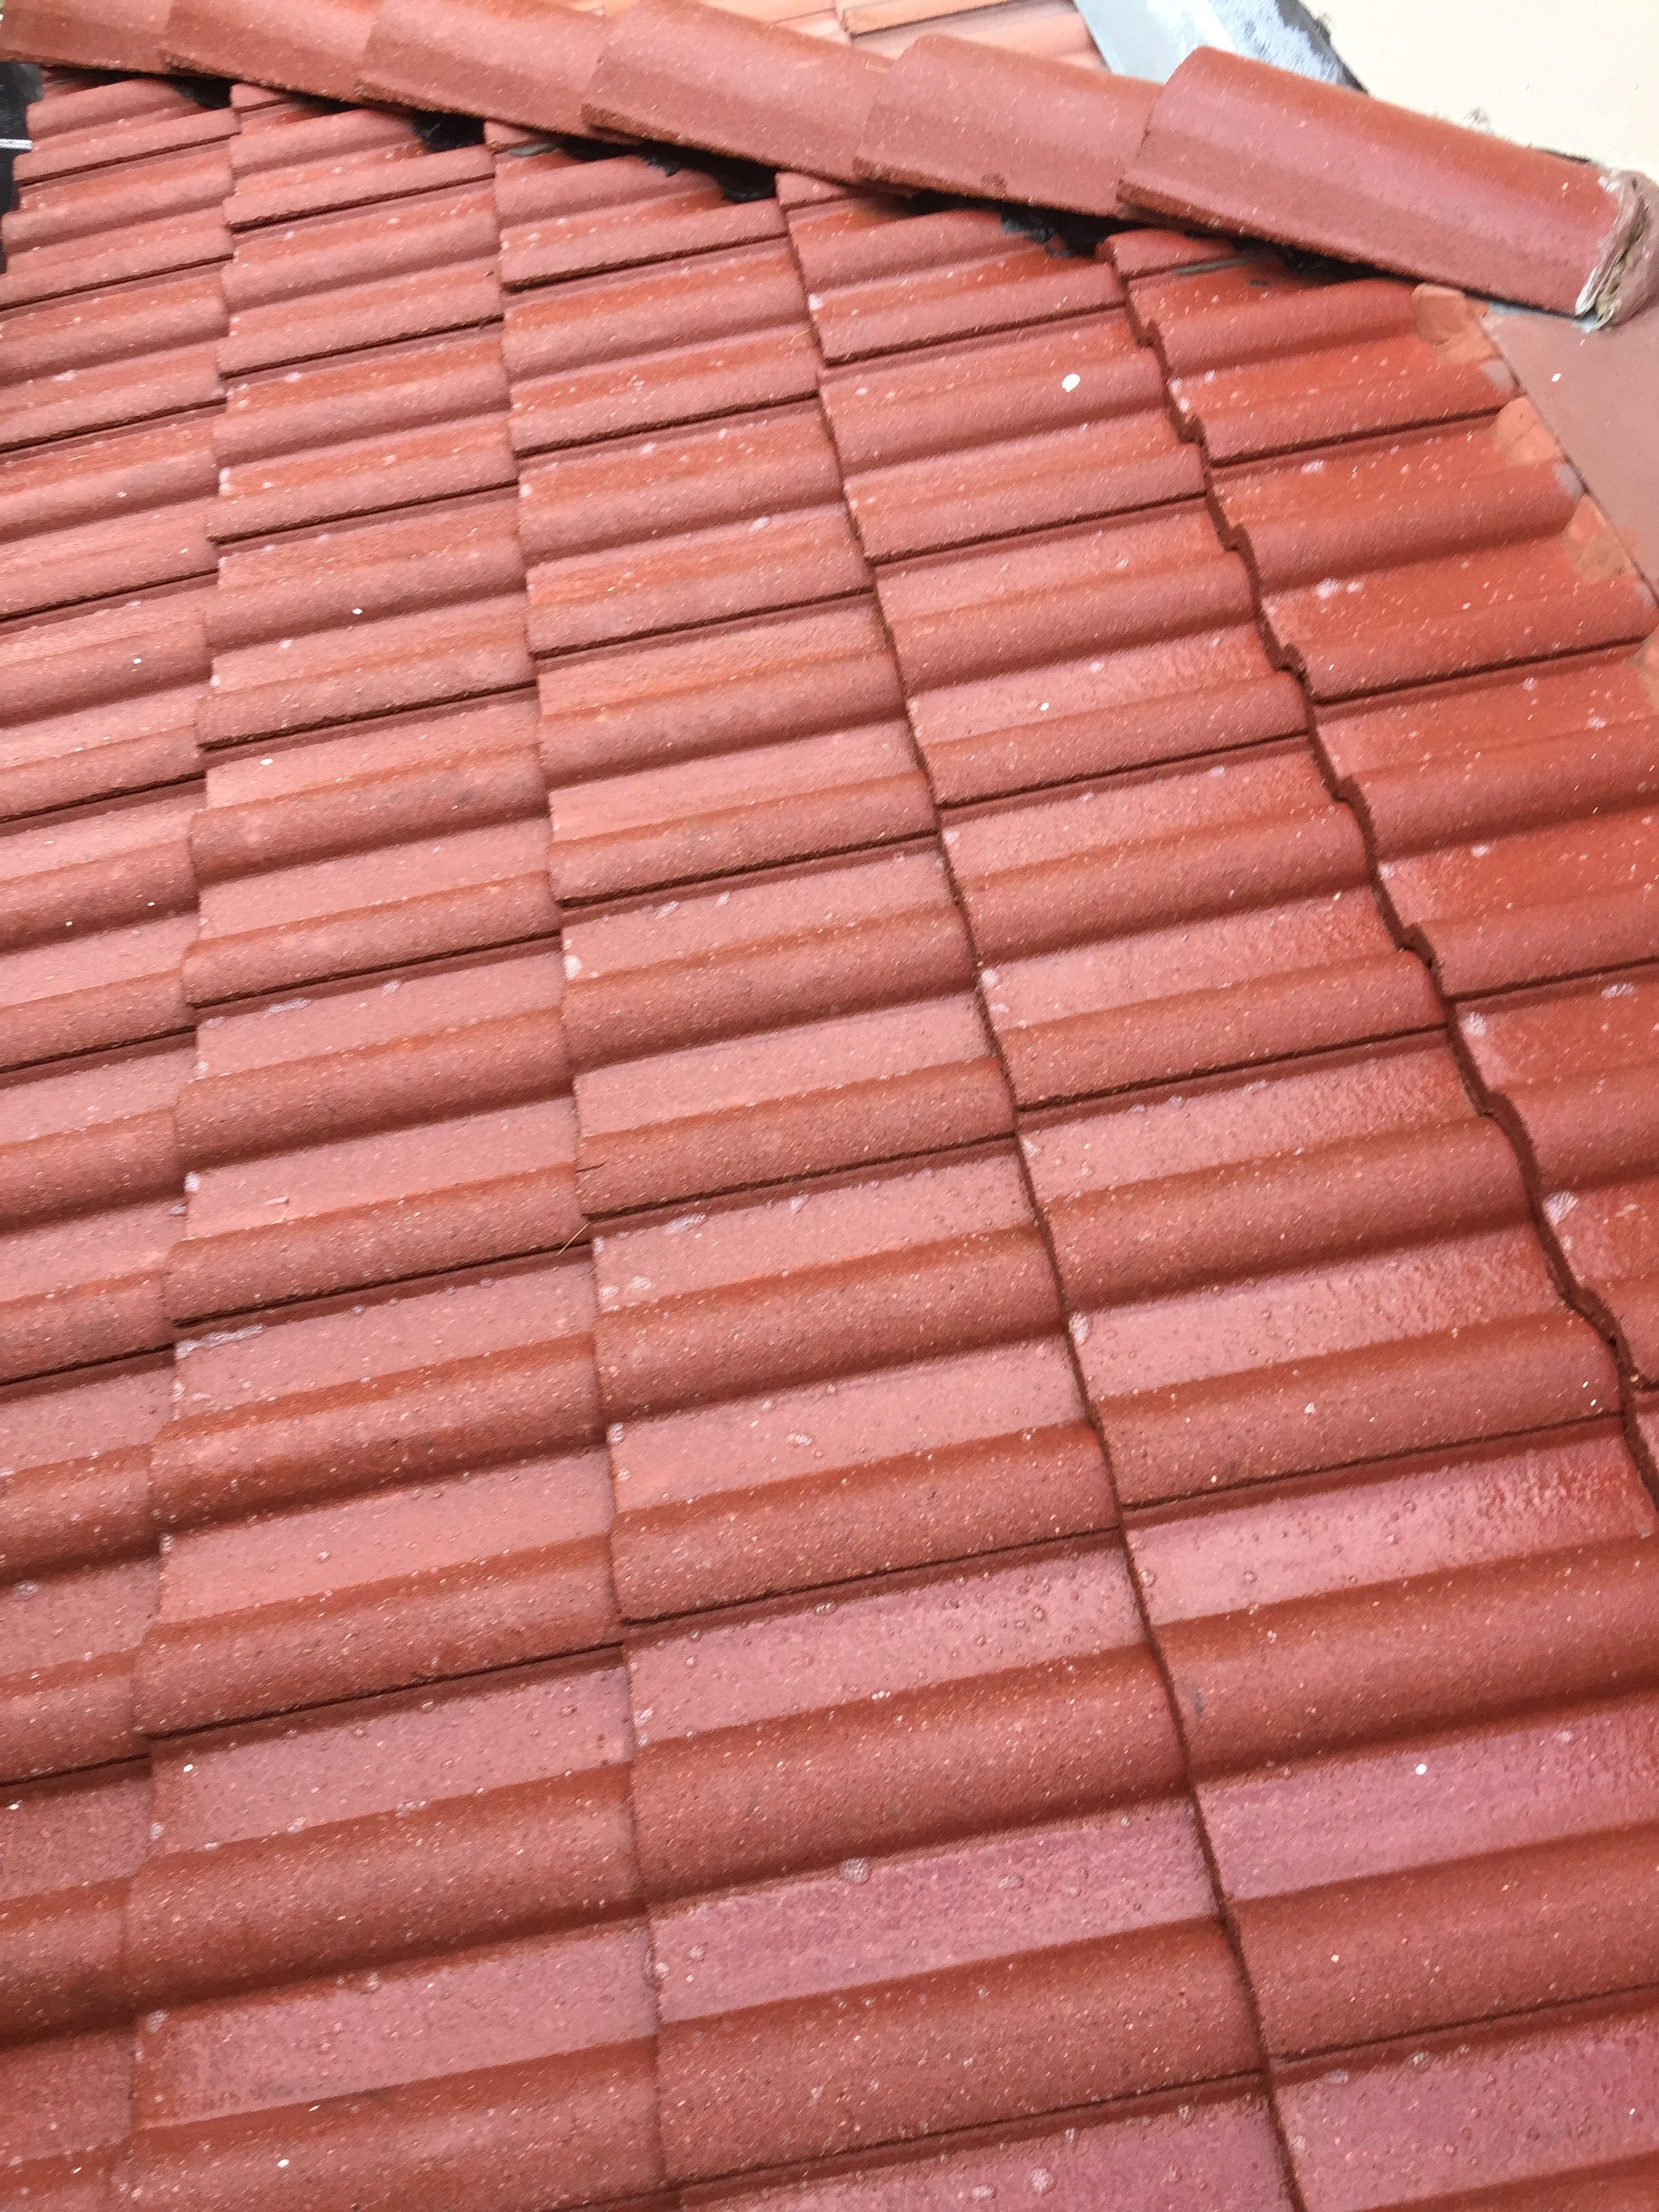 Look at that roof sparkling clean window company blog Sparkling image roof exterior cleaning